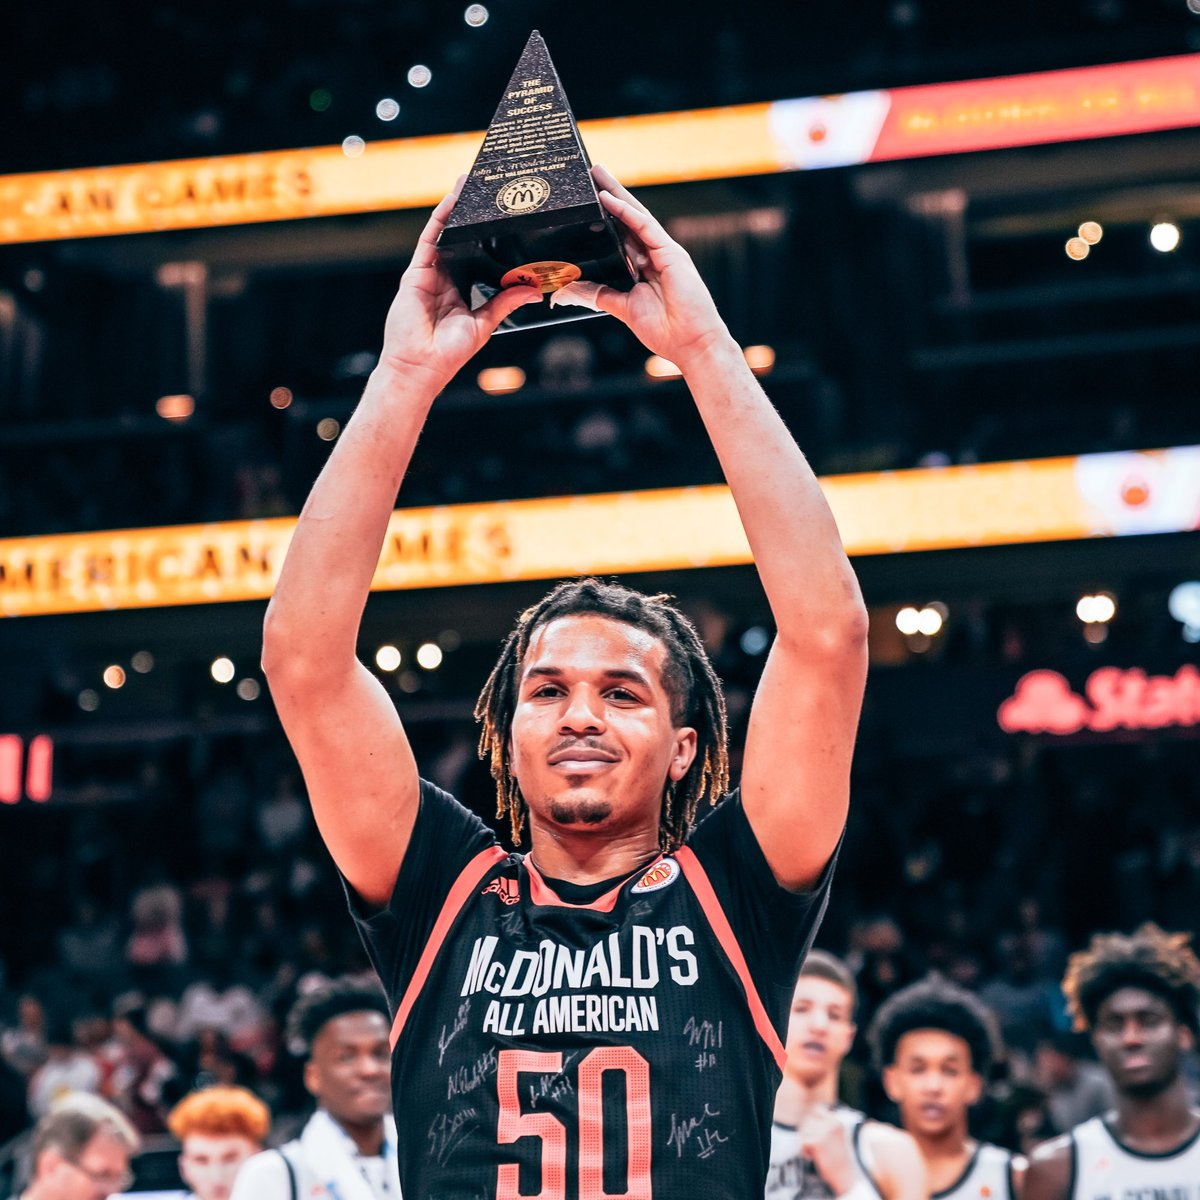 🏀🍟🍔🏆  The 2019 McDonald's All American Games was one for the books.  @mcdaag #WhereTheFutureStarts #teamadidas